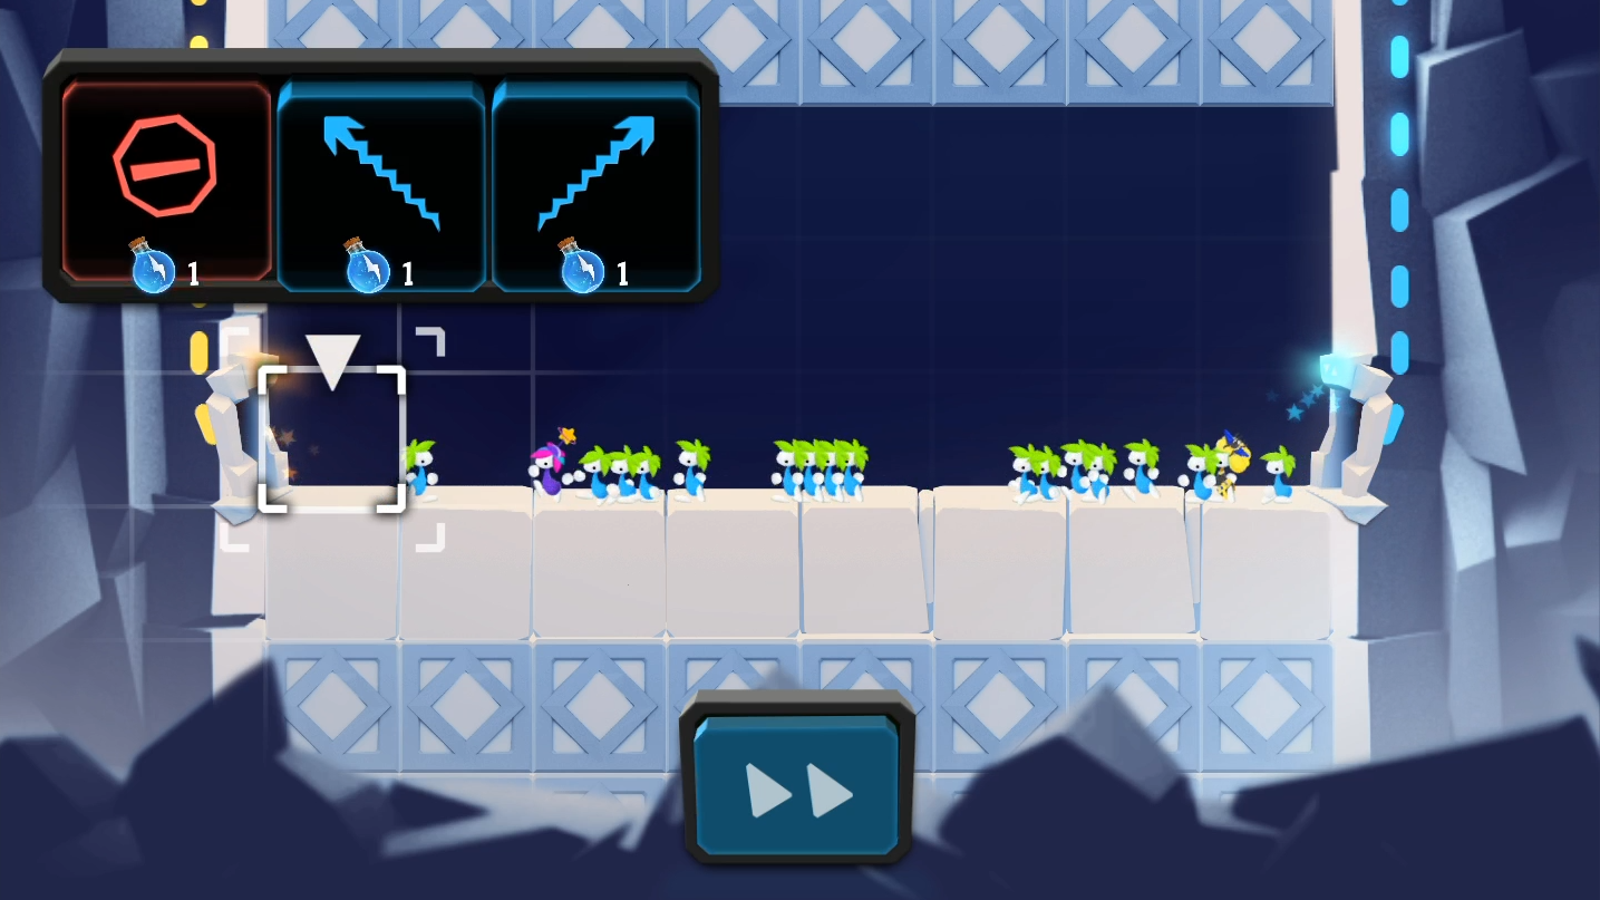 Try These Mobile 'Lemmings' Games Instead of Sony's Crappy Port